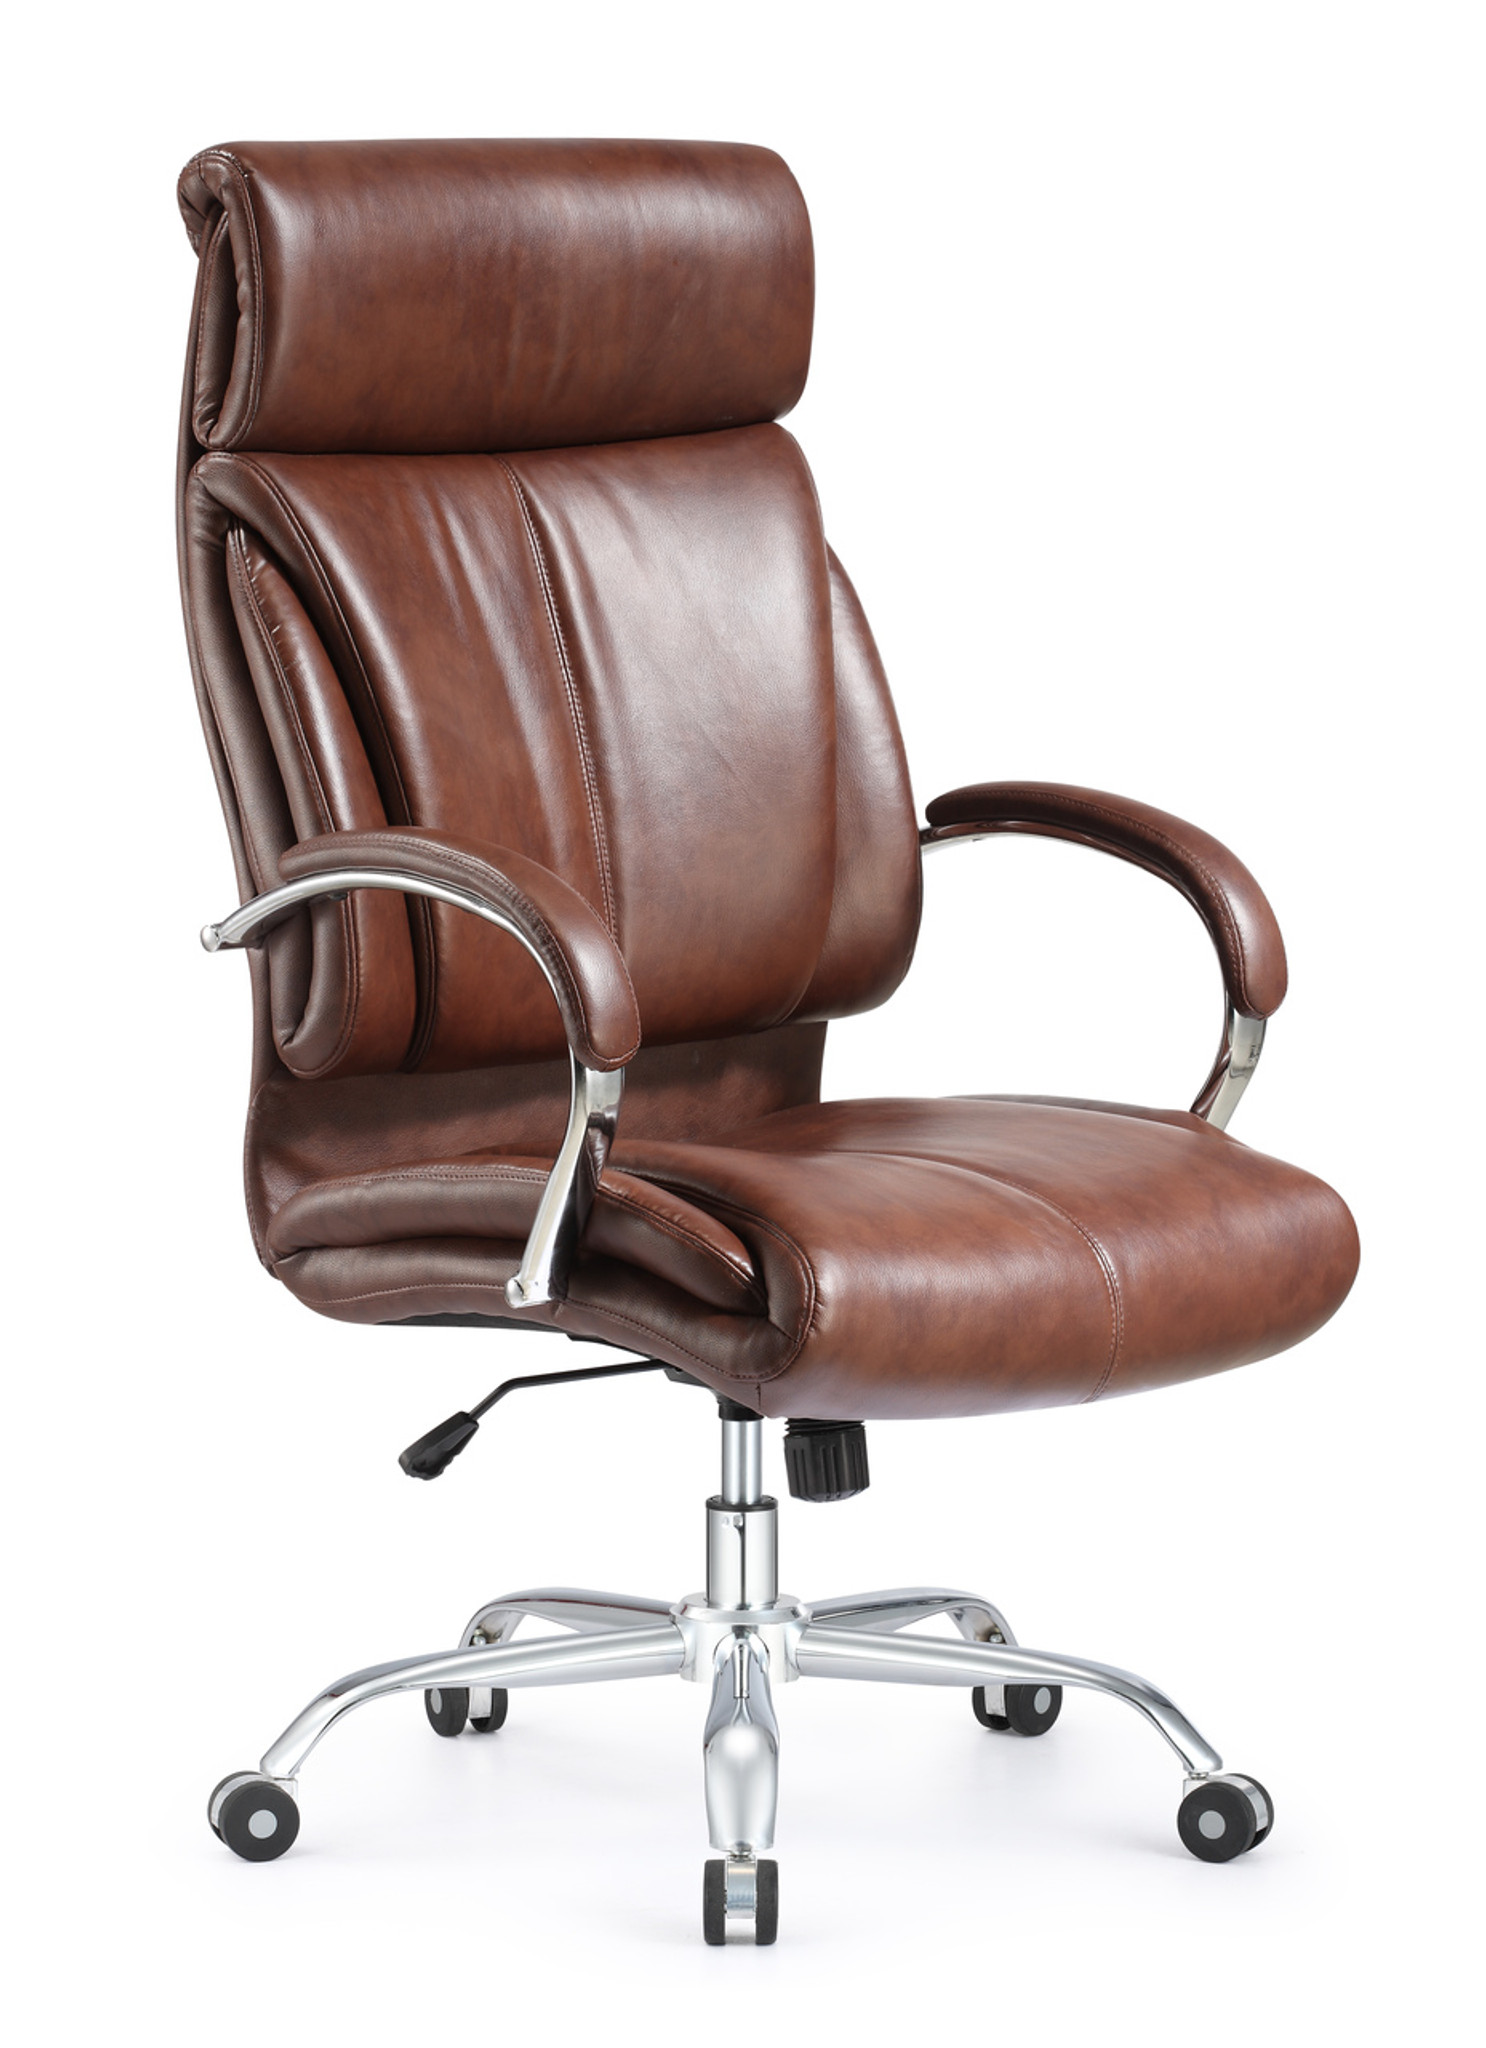 Executive Leather Chair Ergonomic Style And Vintage High Back Leather Office Chair Brown Leather Chair